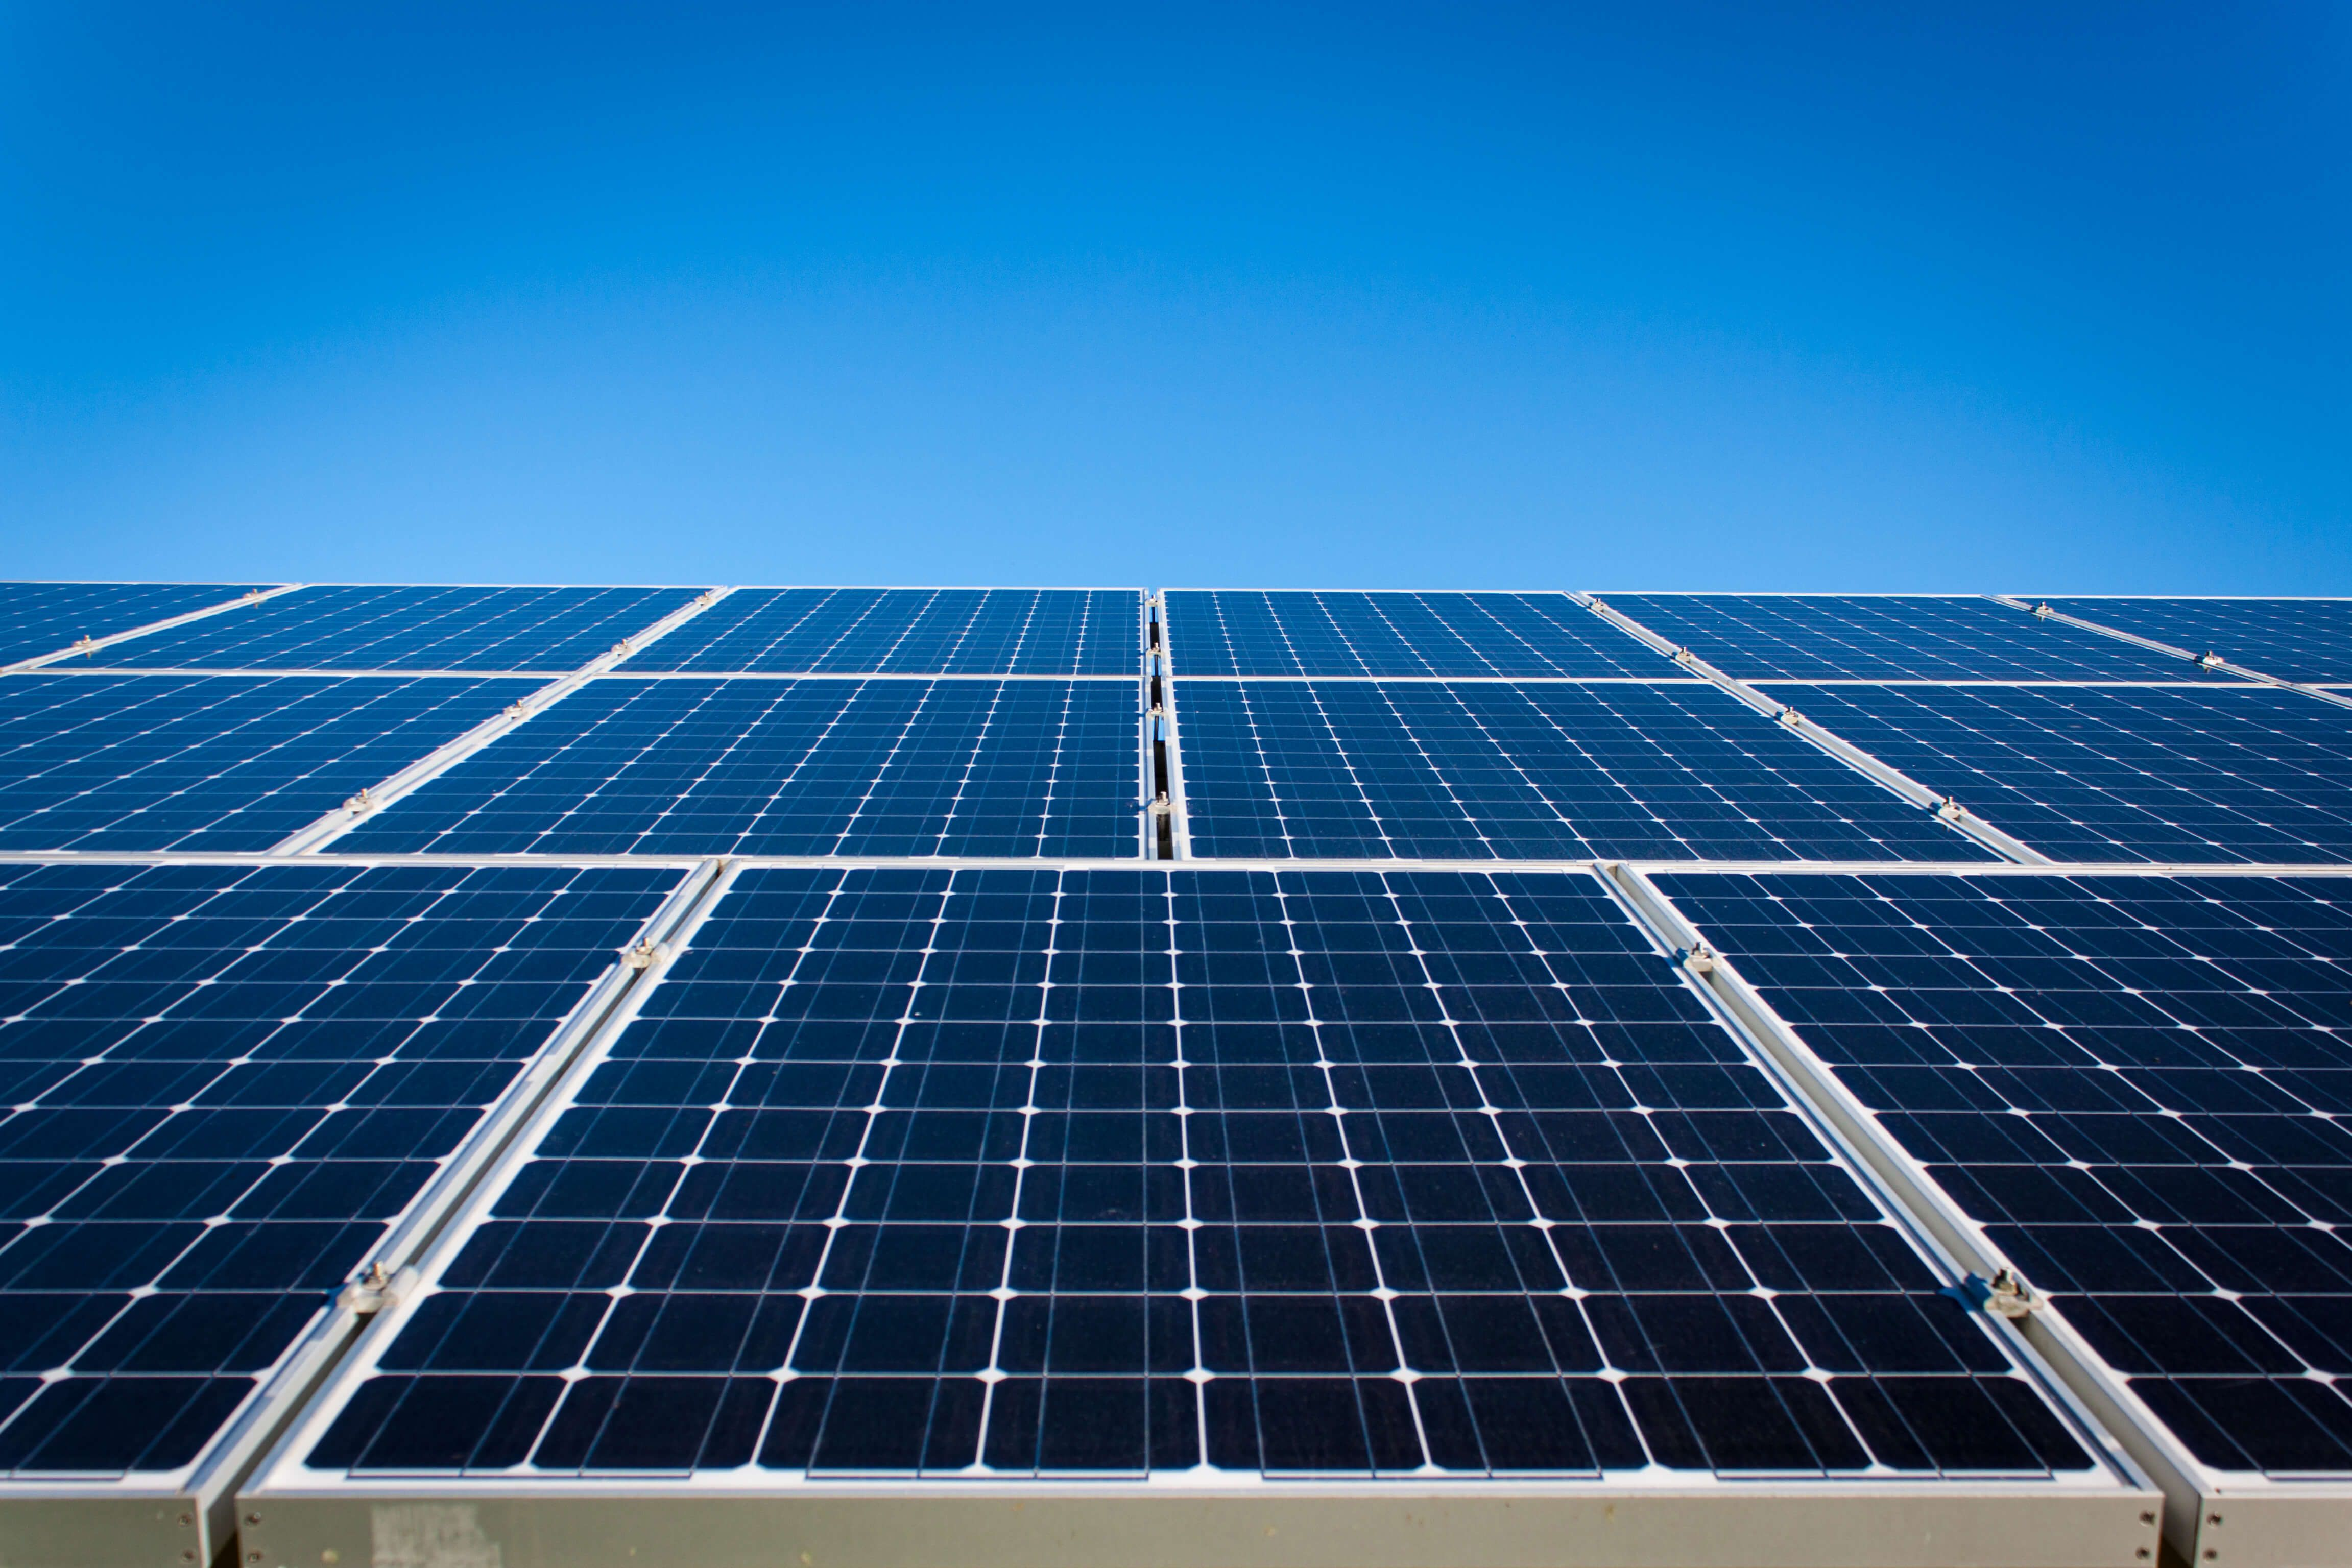 In This Guest Article The Author Argues Quot More Work Needs To Be Done To Calculate Solar Panels 39 Solar Panels For Home Solar Panels Best Solar Panels